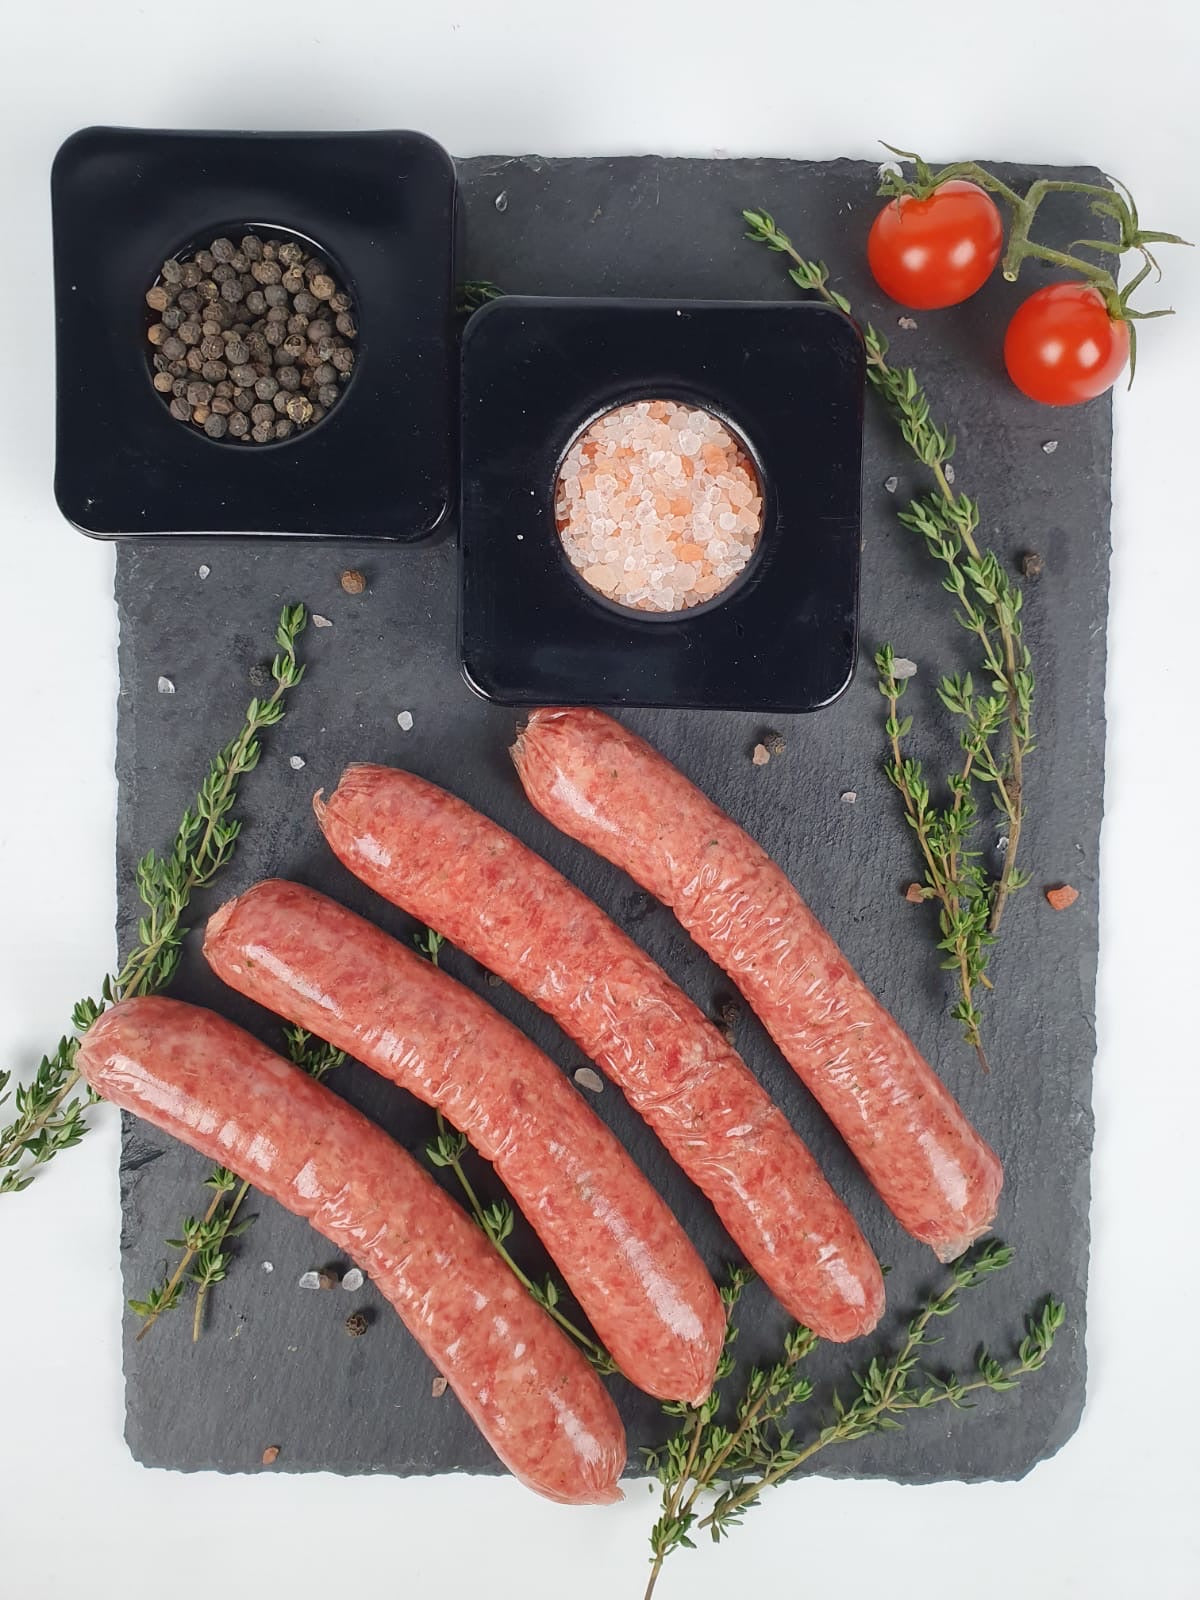 Halal Chilly Beef Sausages (500g)